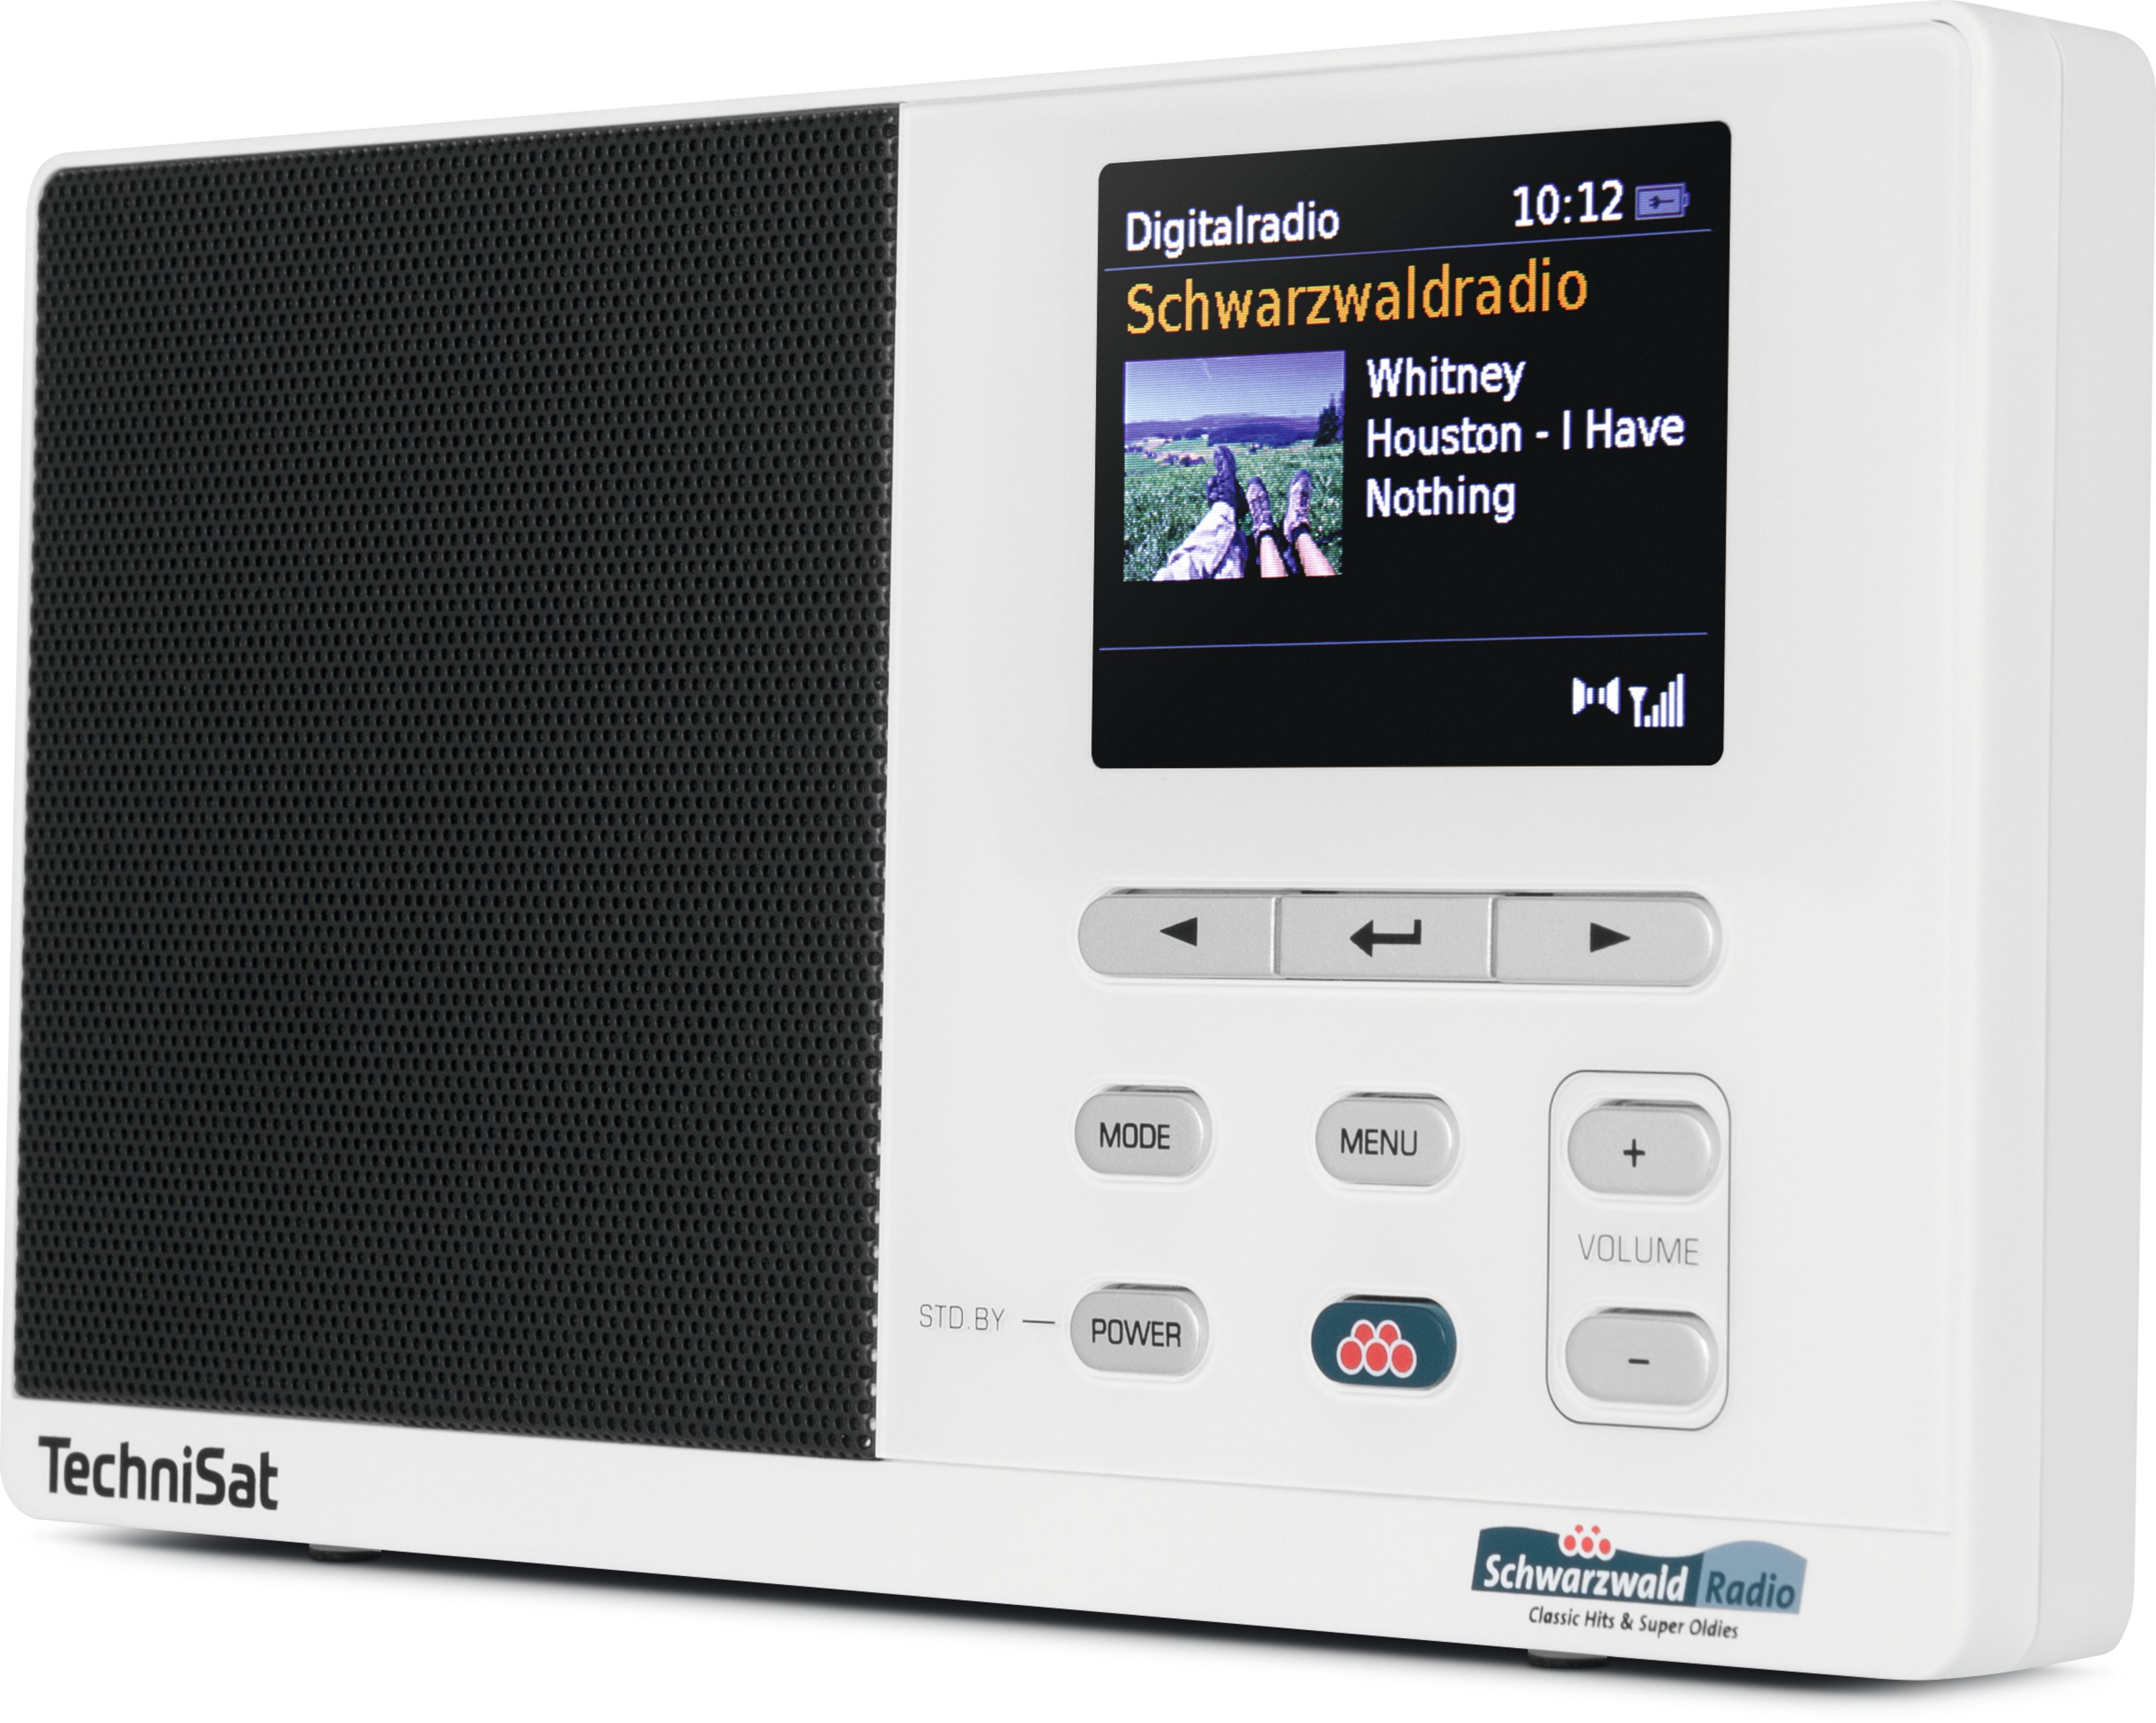 DIGITRADIO 215 Schwarzwaldradio Edition